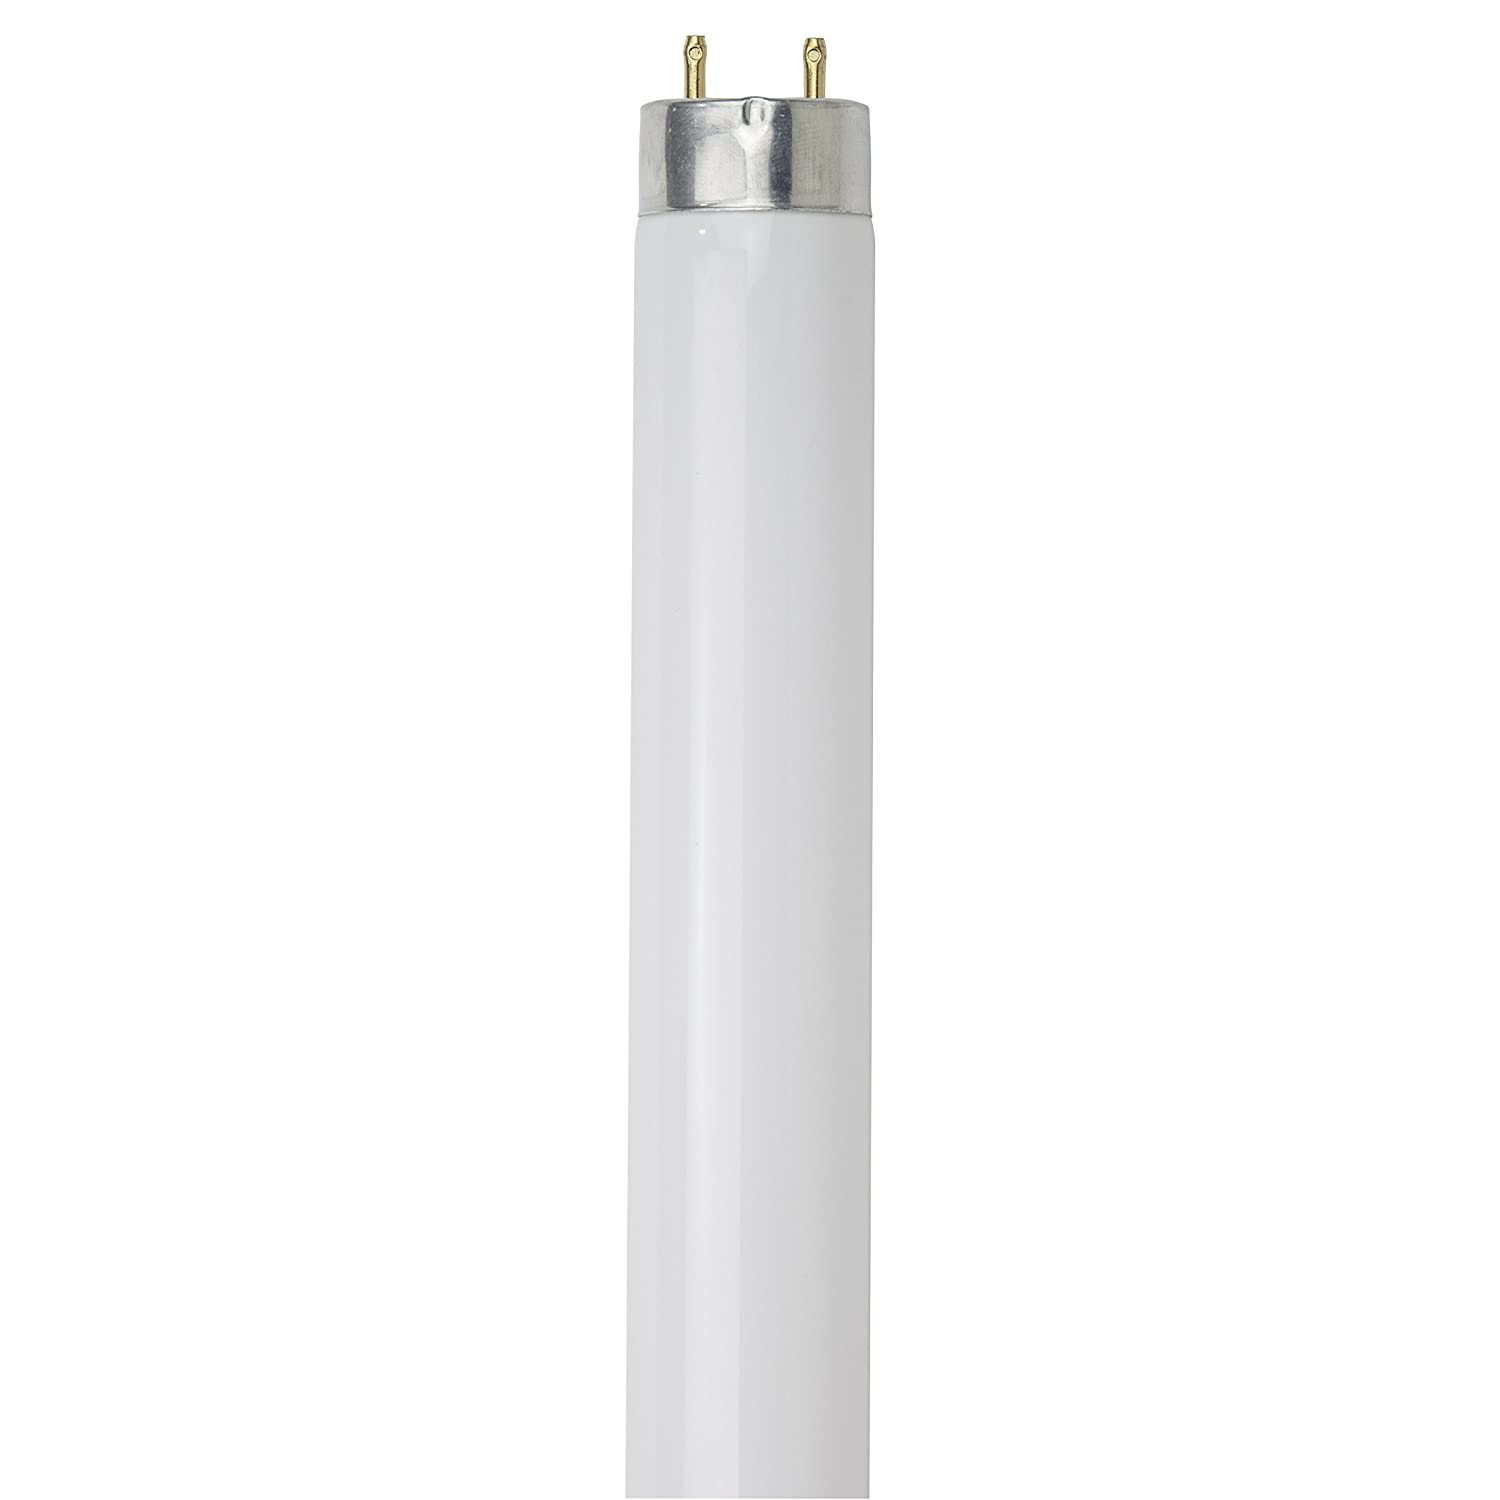 Base Straight Tube Light Bulb 25W//5000K Soft White Sunshine Lighting 30 Pack G13 Sunlite F25T8//SP850//30PK T8 High Performance Medium Bi-Pin